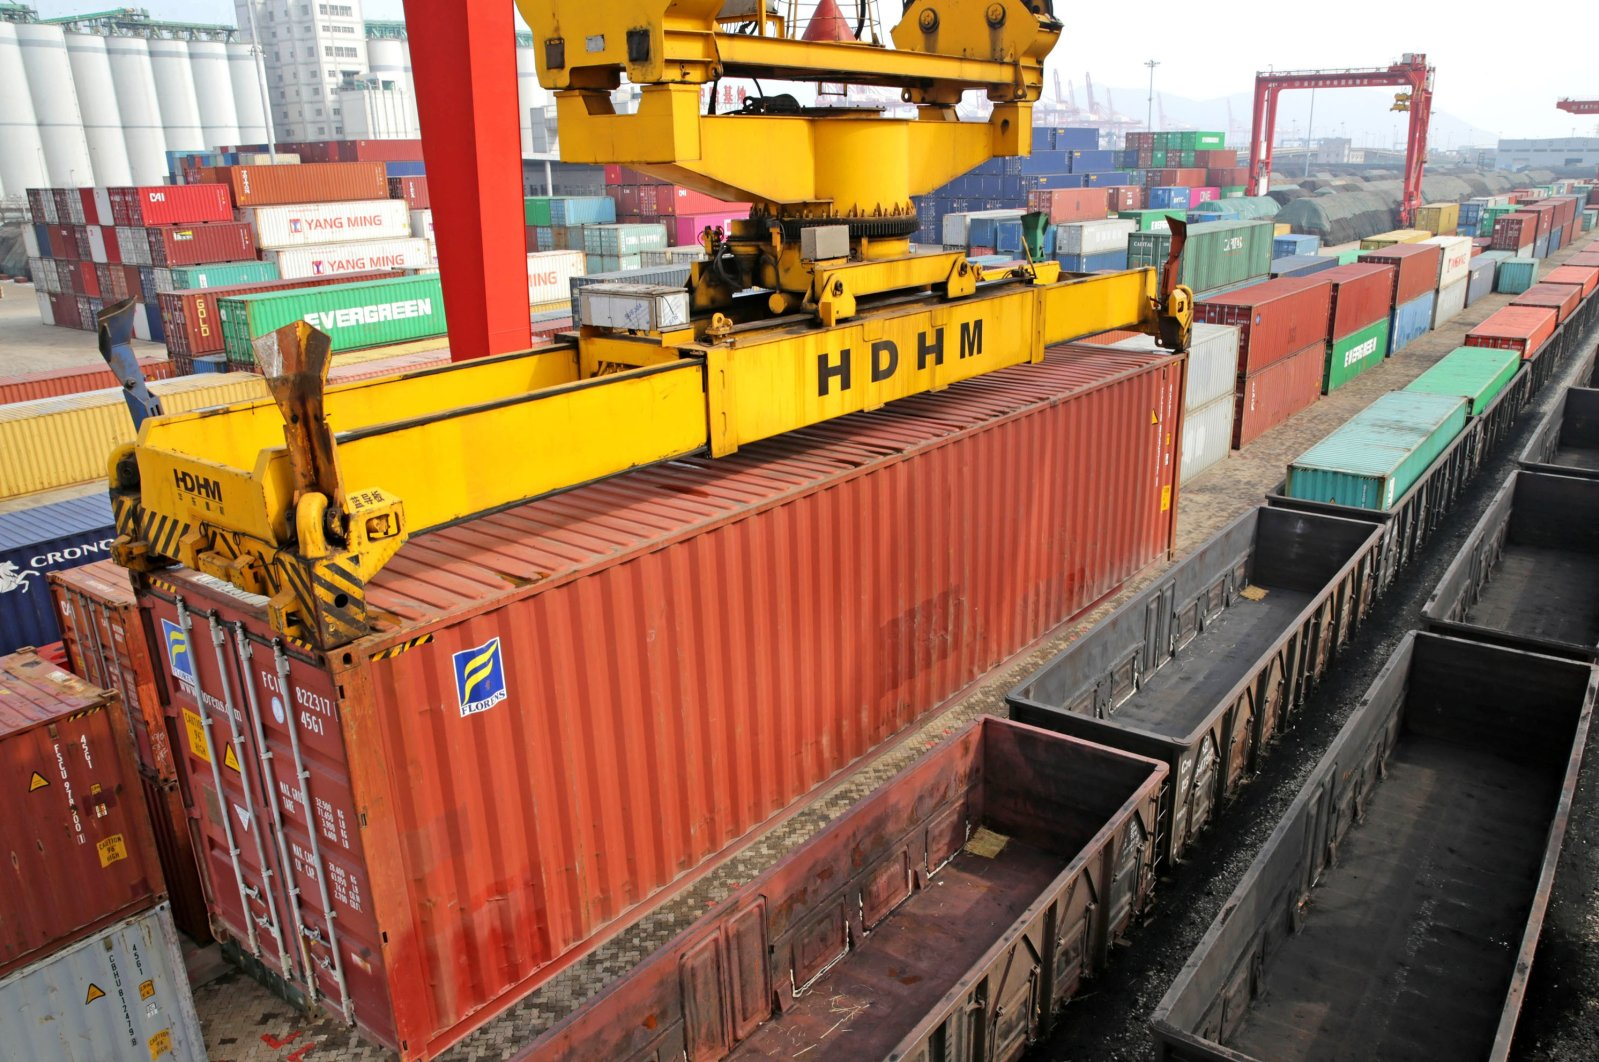 A worker controls the gantry crane to lift the export container at the station of Lianyungang logistics cooperation base of China and Kazakhstan, Lianyungang, Jiangsu Province, China, March 2, 2020. (Getty Images)